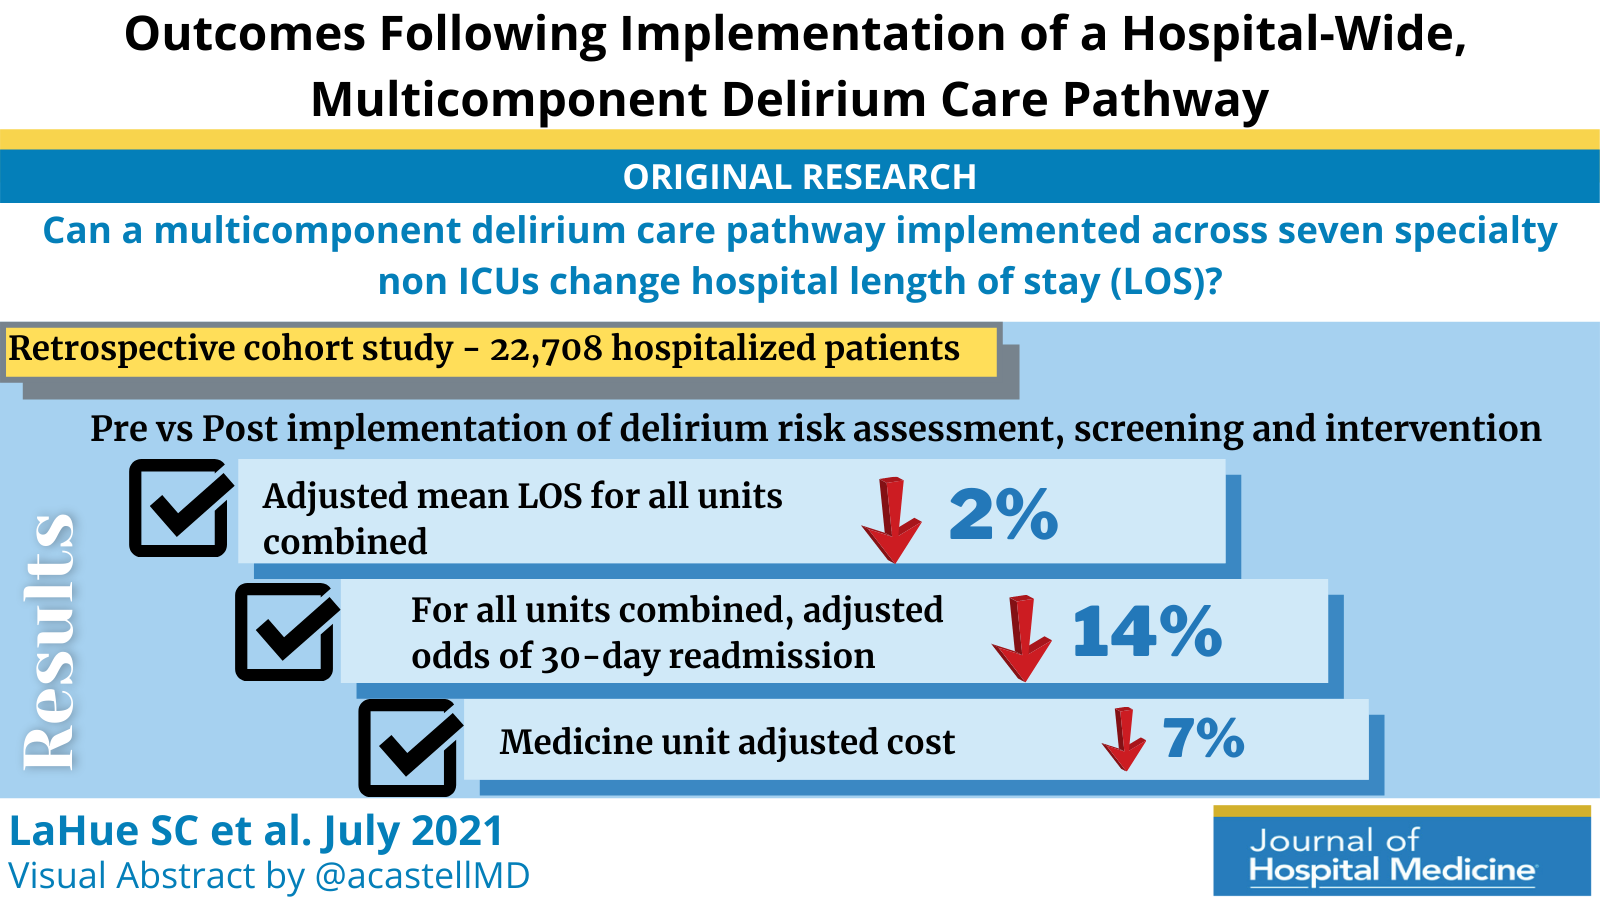 Outcomes Following Implementation of a Hospital-Wide, Multicomponent Delirium Care Pathway